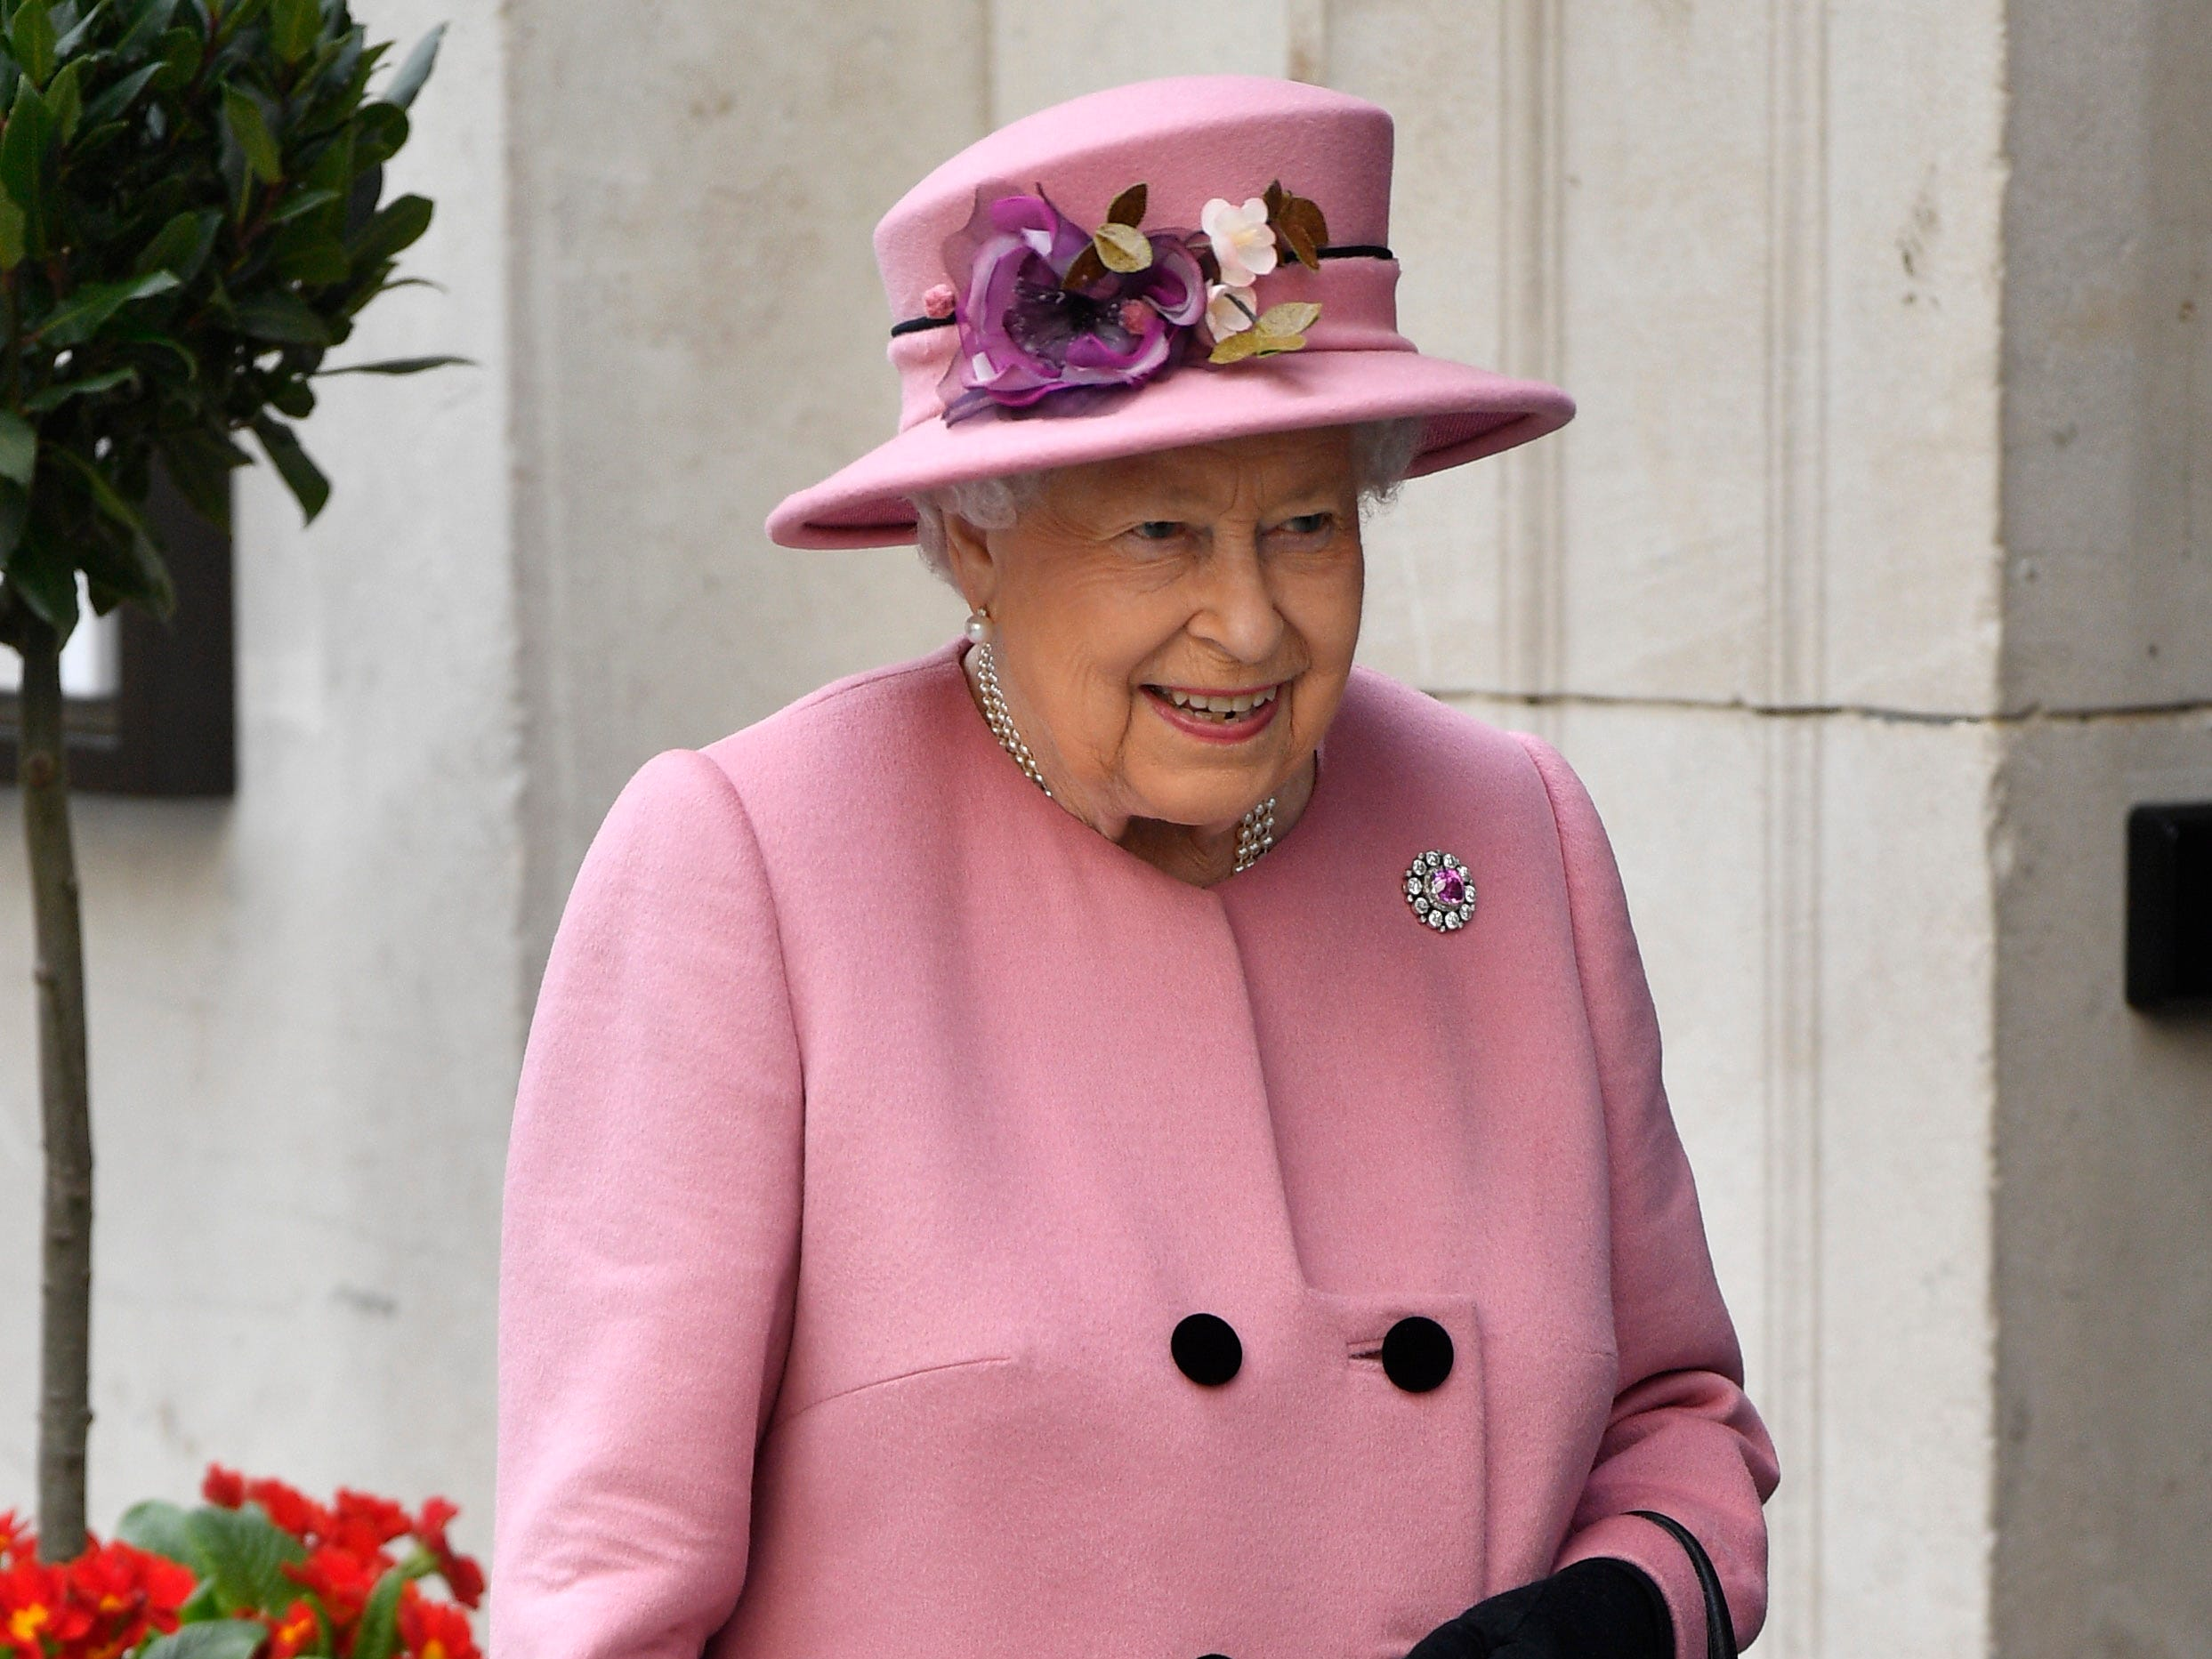 epa07448317 Britain's Queen Elizabeth leaves Kings College in London, Britain, 19 March 2019. They opened Bush House and new educational facility on the London universities Strand campus. Bush House is the new teaching-and-research centre spread out over five iconic buildings on the Strand campus in central London Bush House previously served as the headquarters of the BBC World Service.  EPA-EFE/NEIL HALL ORG XMIT: NGH08